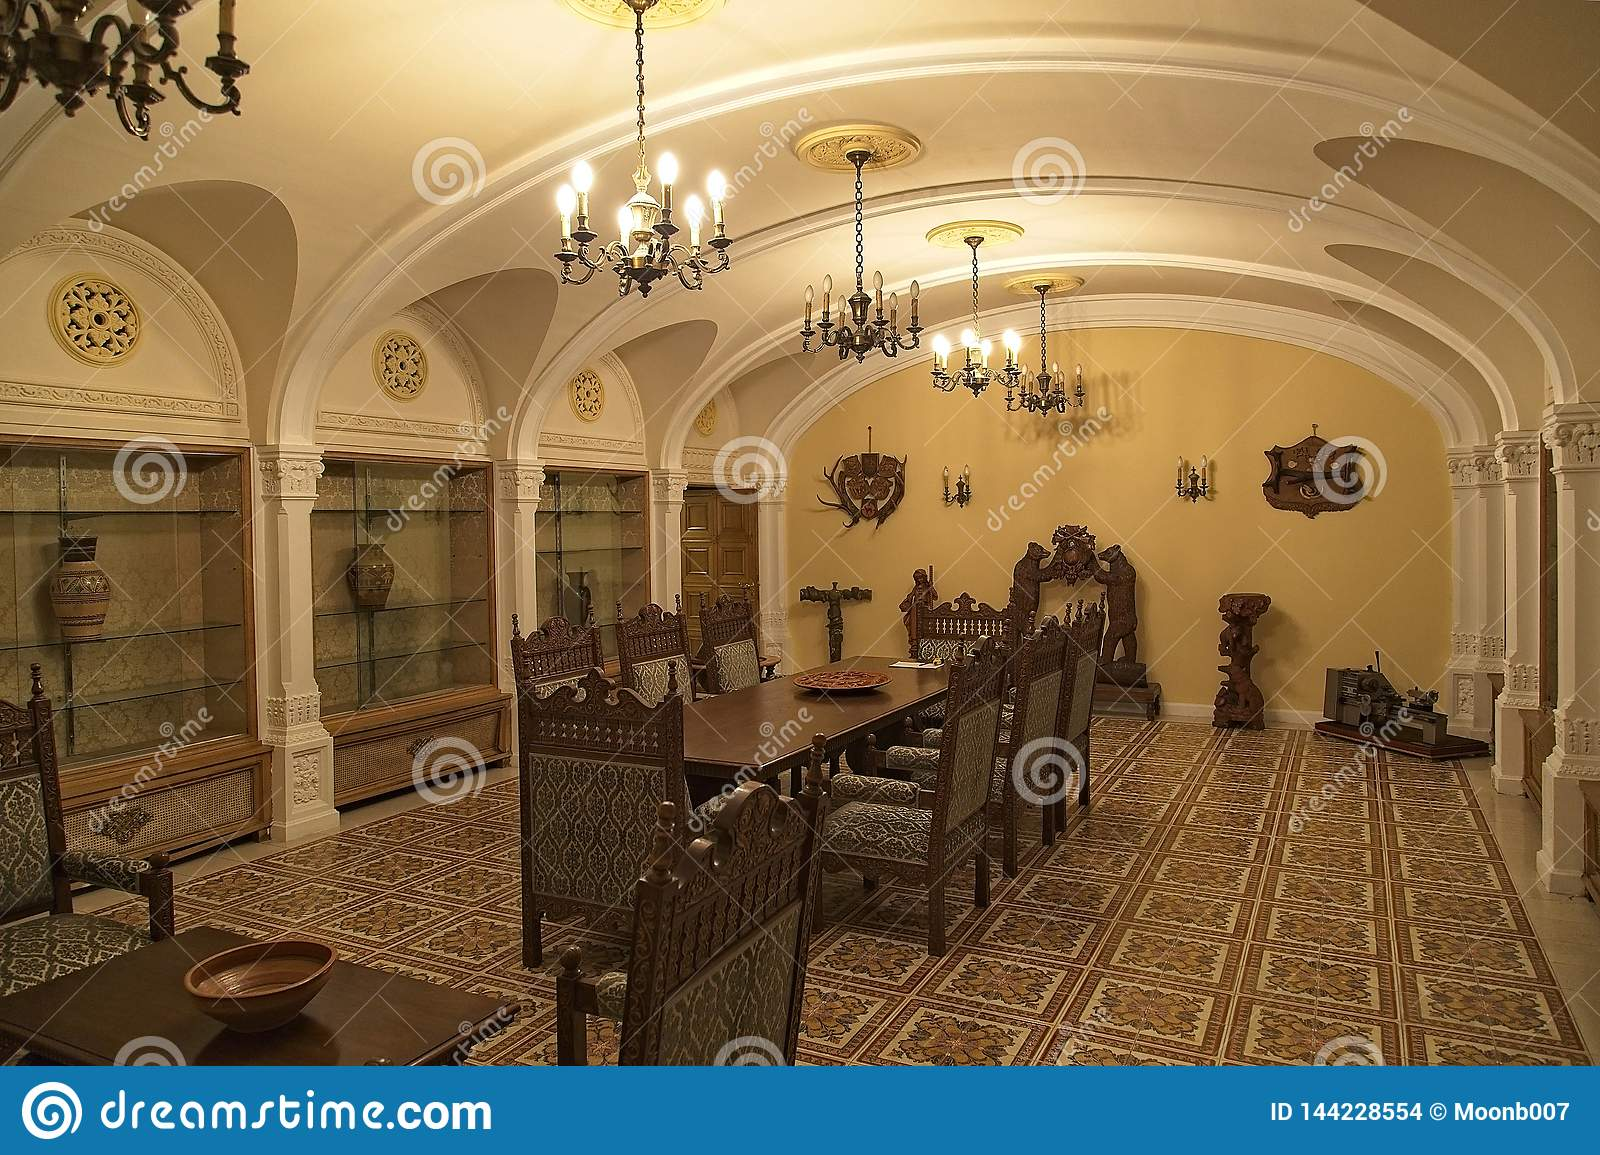 Ceausescu Palace Dinning